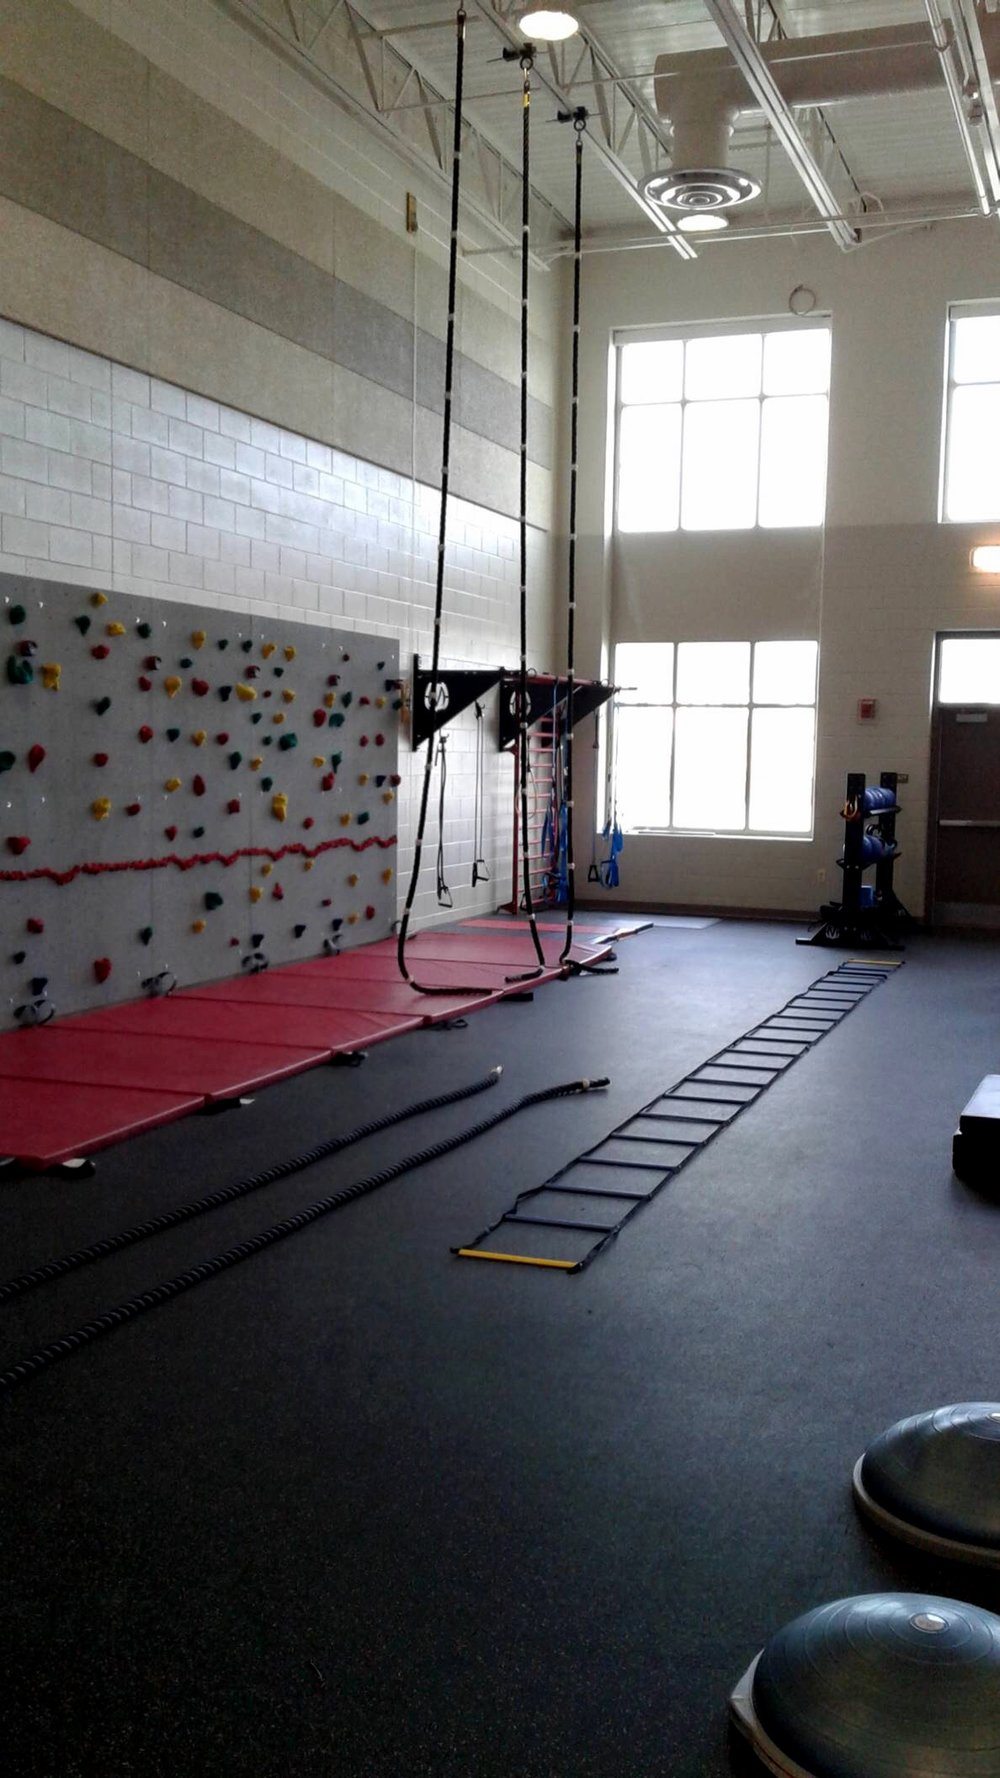 Climbing ropes for students